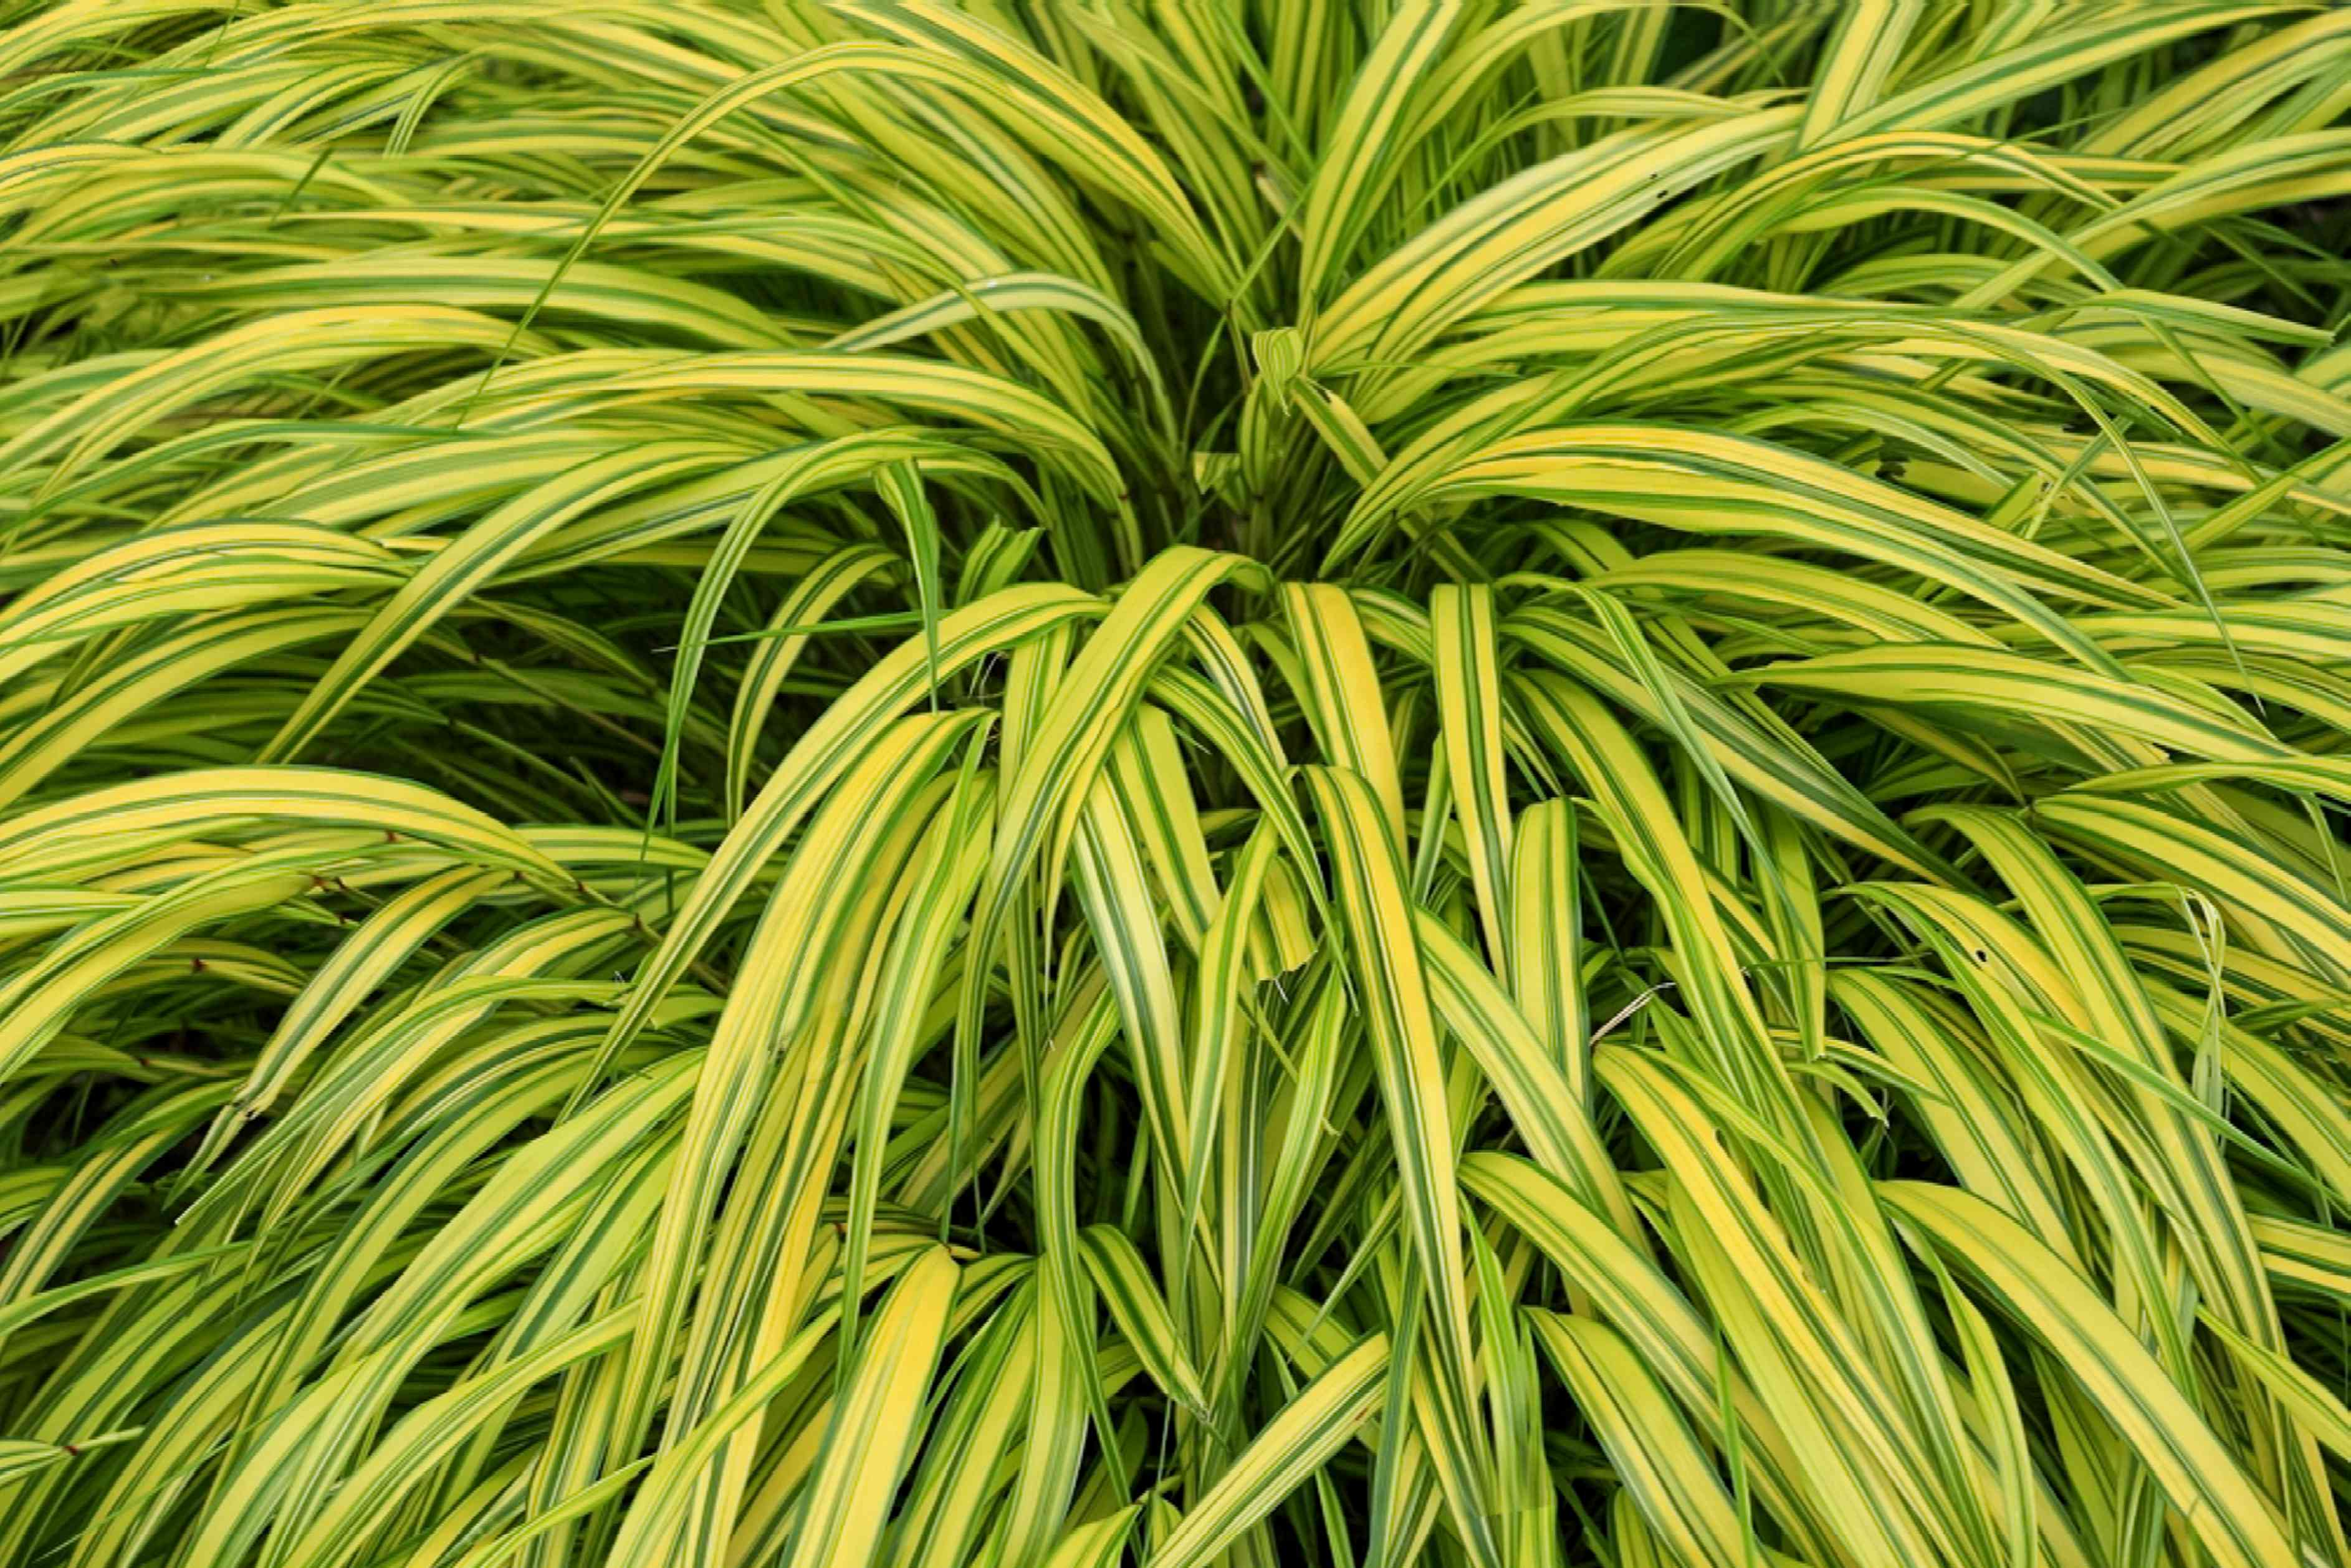 Golden Japanese forest grass with arching yellow-green blades